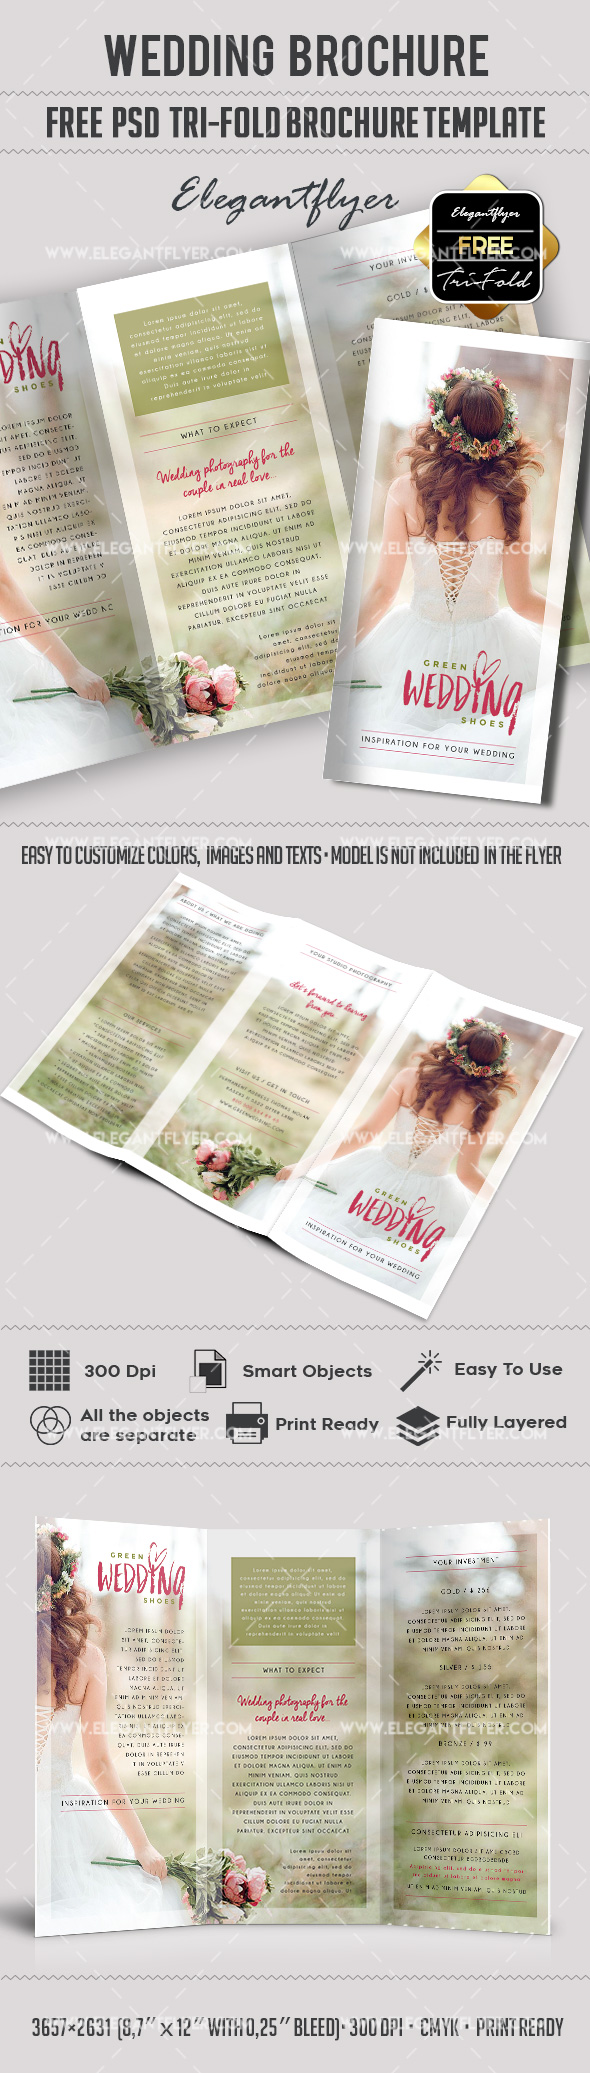 Wedding free tri fold psd brochure template by for Tri fold brochure templates free download